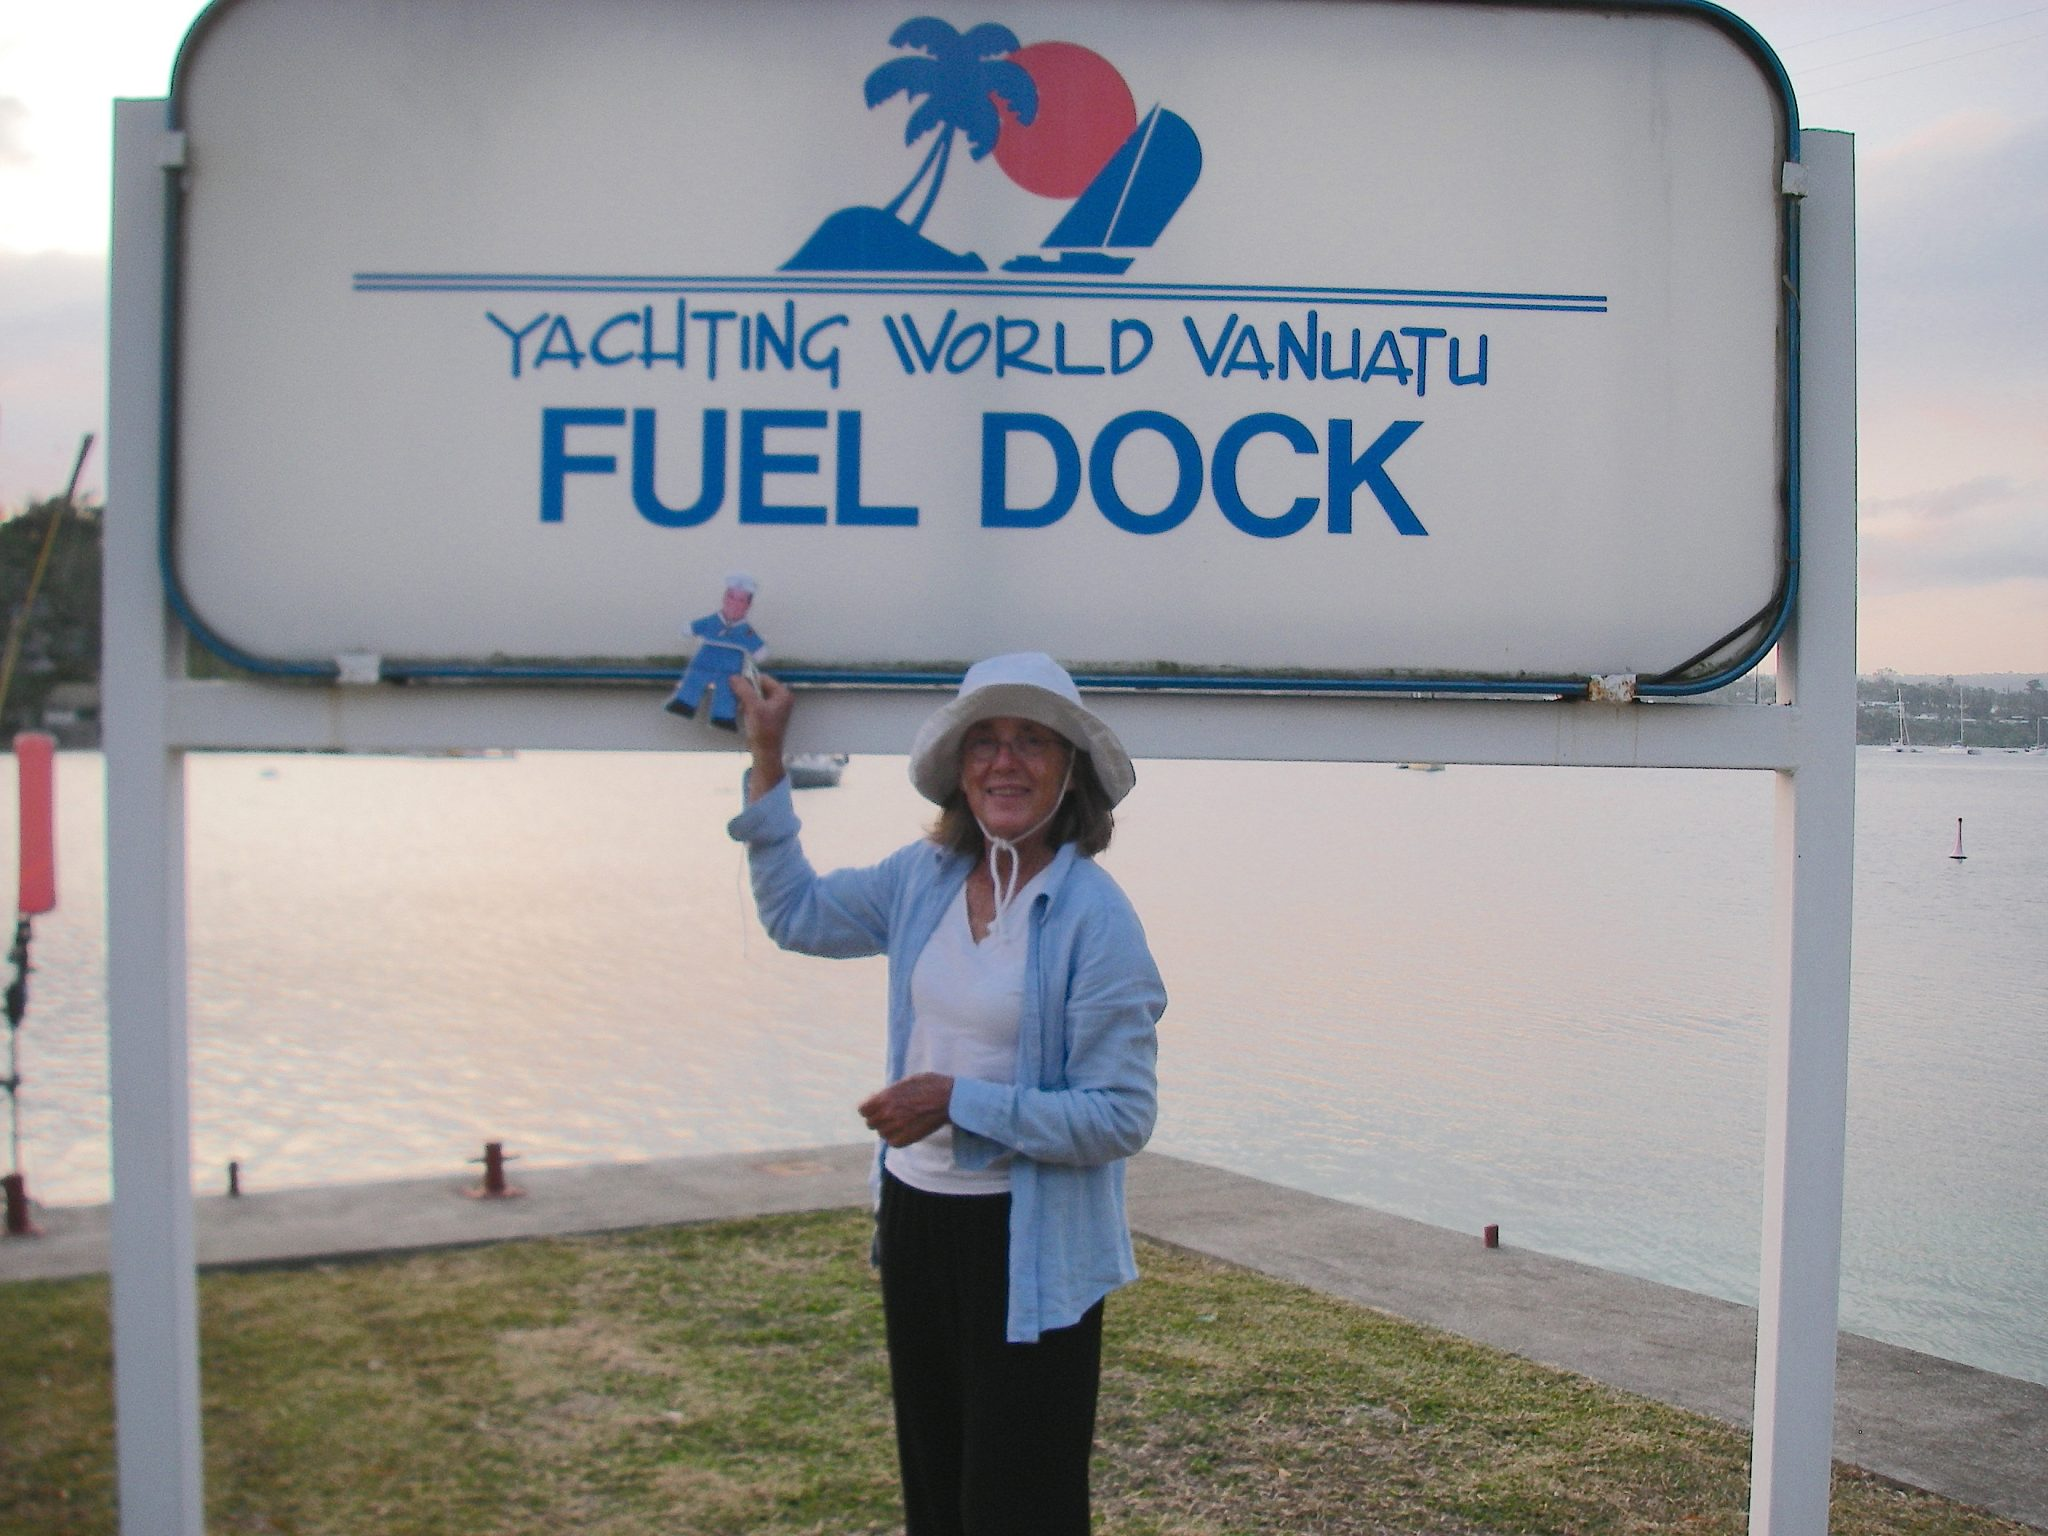 105-flat-mr-davis-helped-refuel-joyful-with-diesel-fuel-in-port-vila-efate-vanuatu-before-we-set-sail-to-australia-this-is-always-a-thrill-to-prepare-for-the-next-passage-to-another-landfall-ove